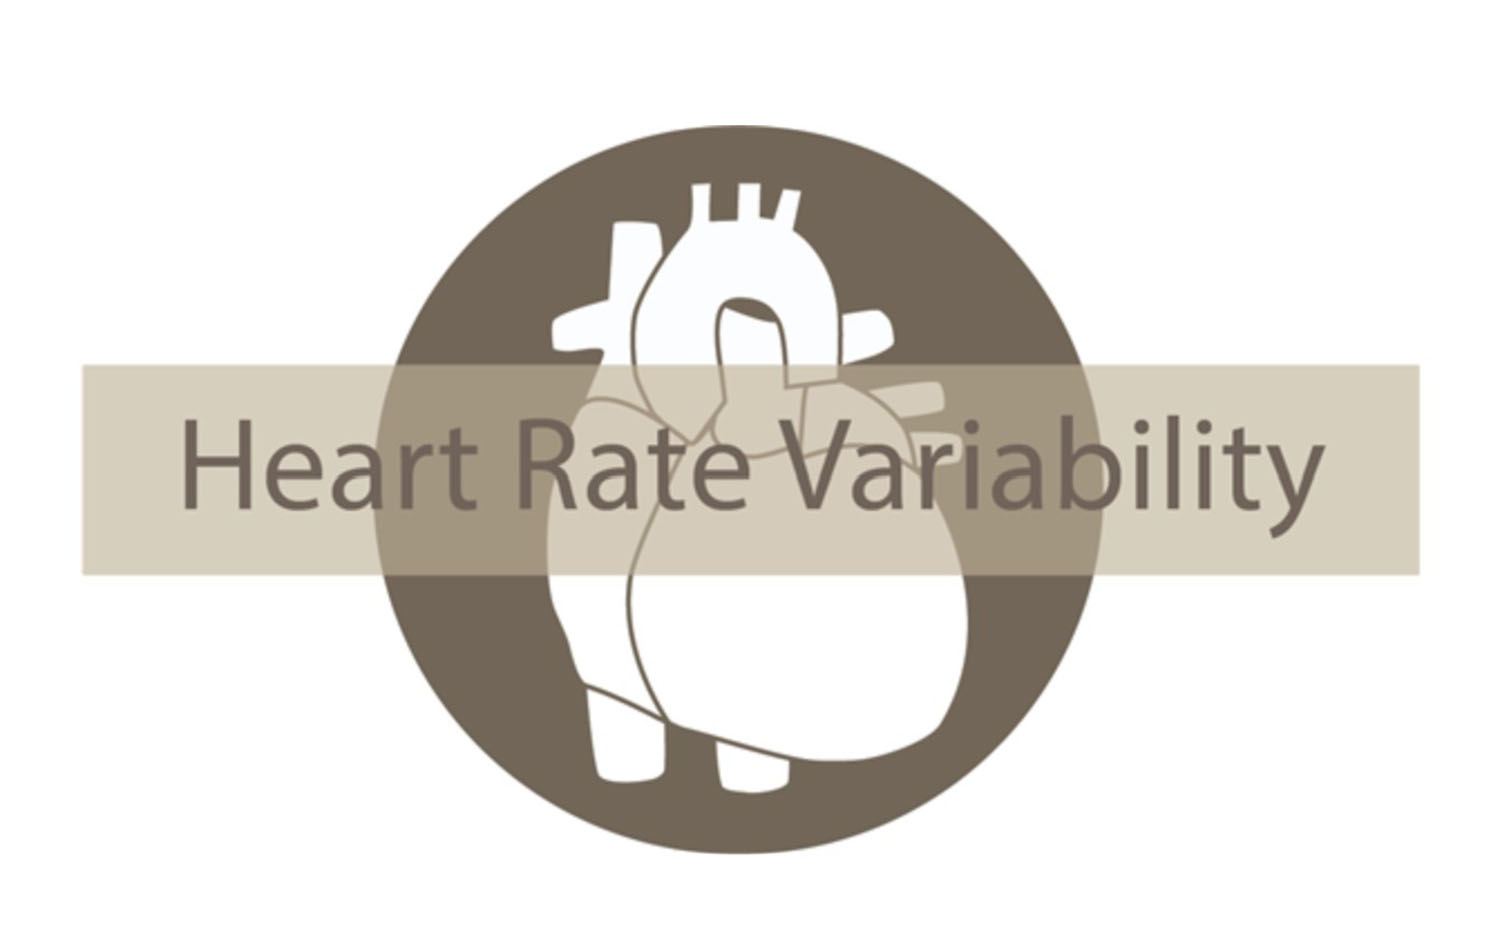 Heart Rate Variability – from elite fitness to everyday health